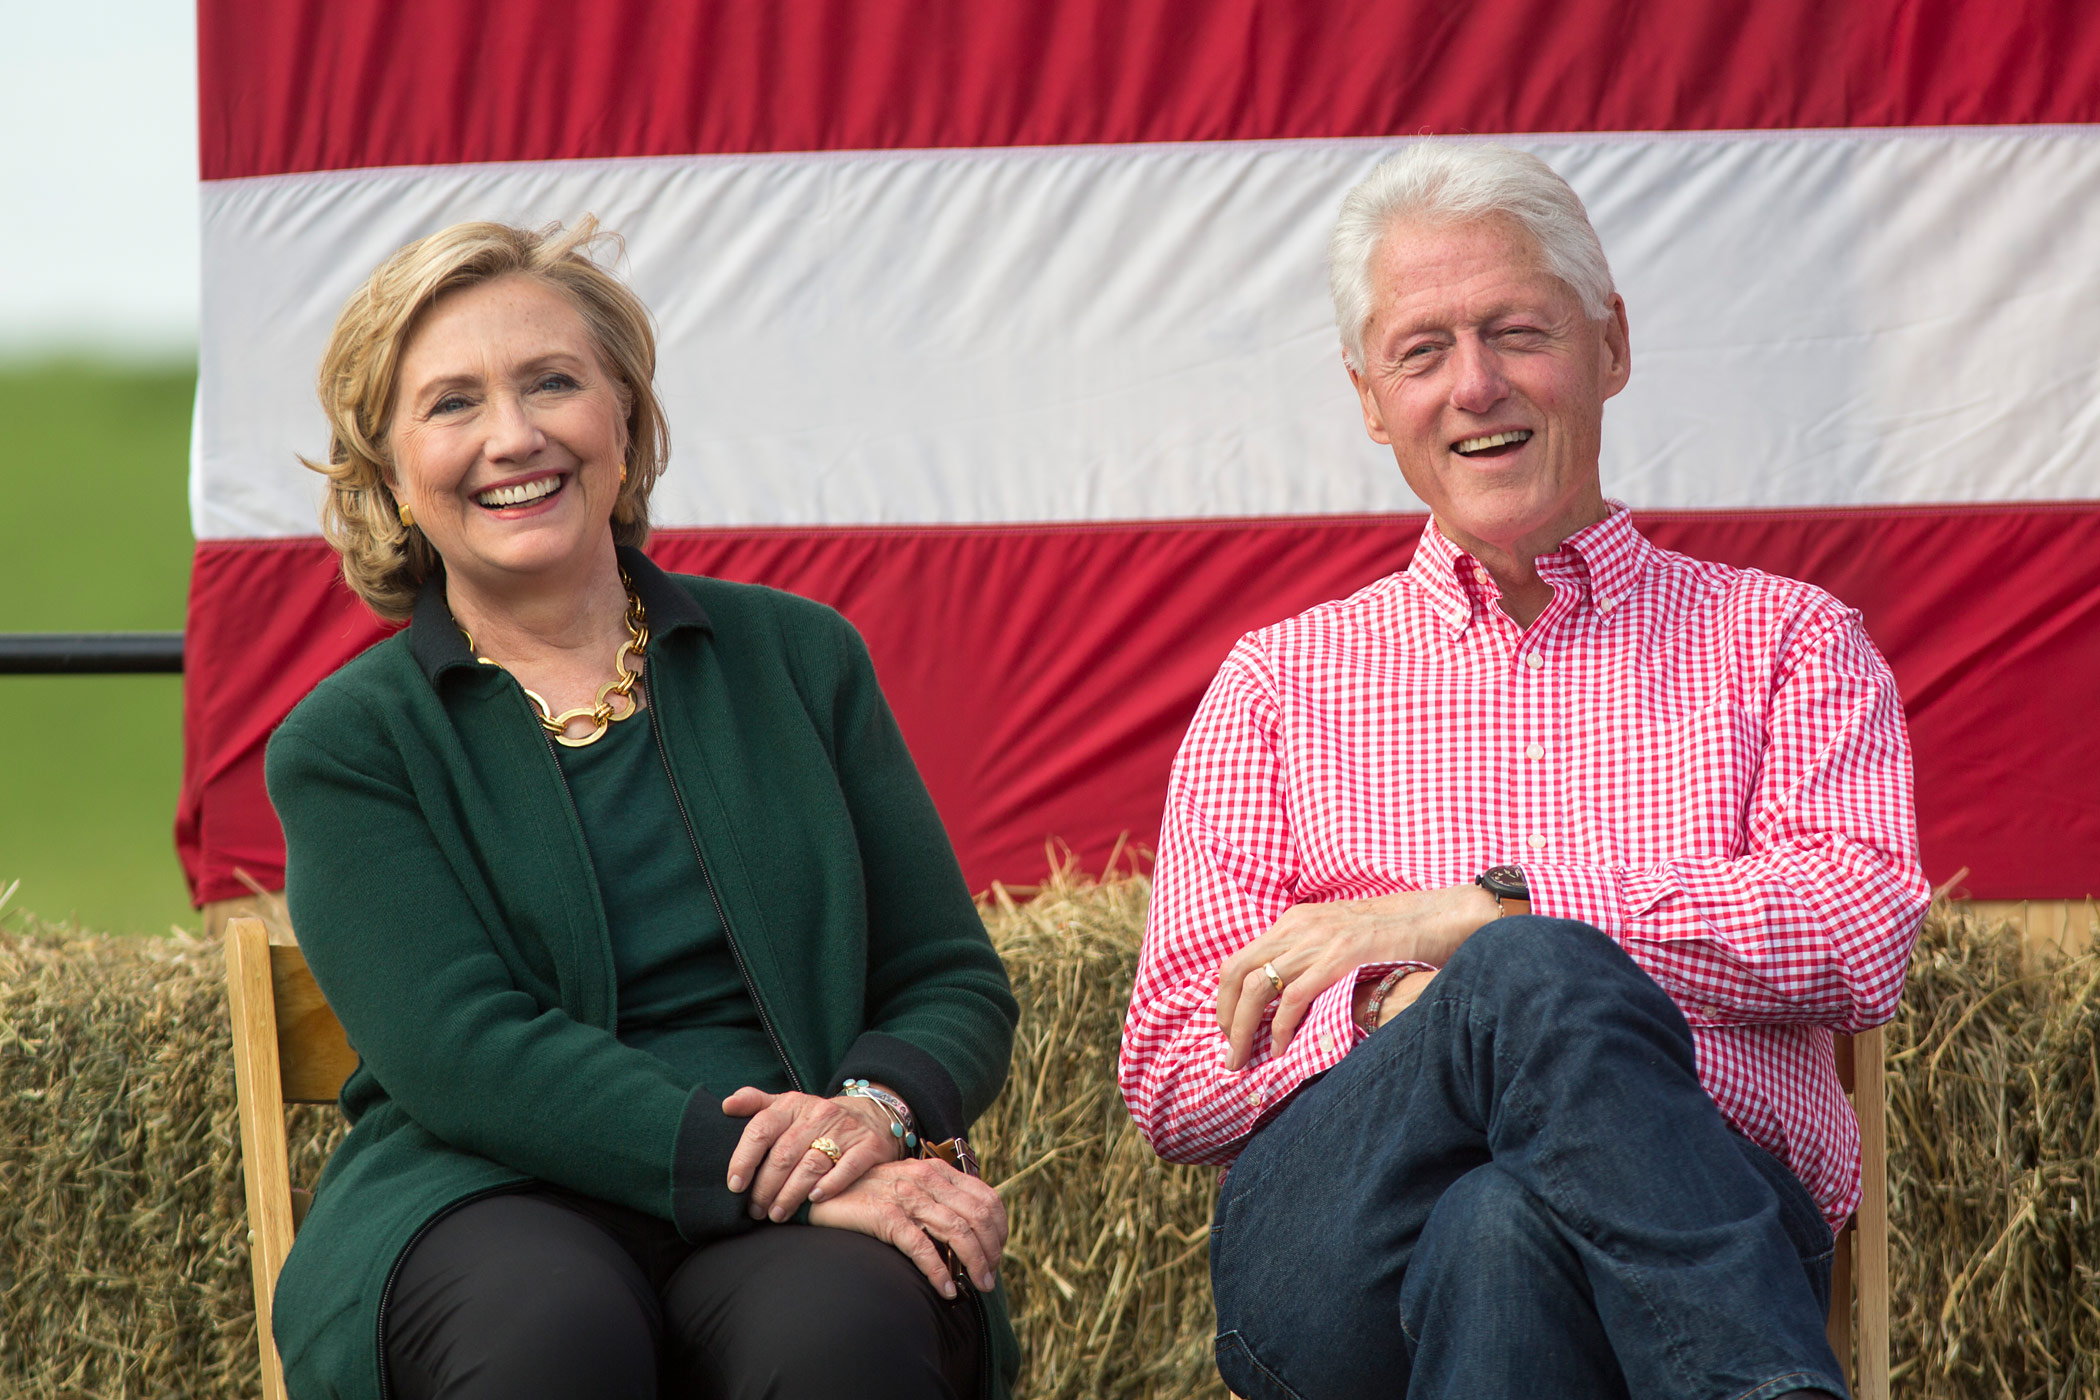 Hillary Clinton attends a Steak Fry in Iowa